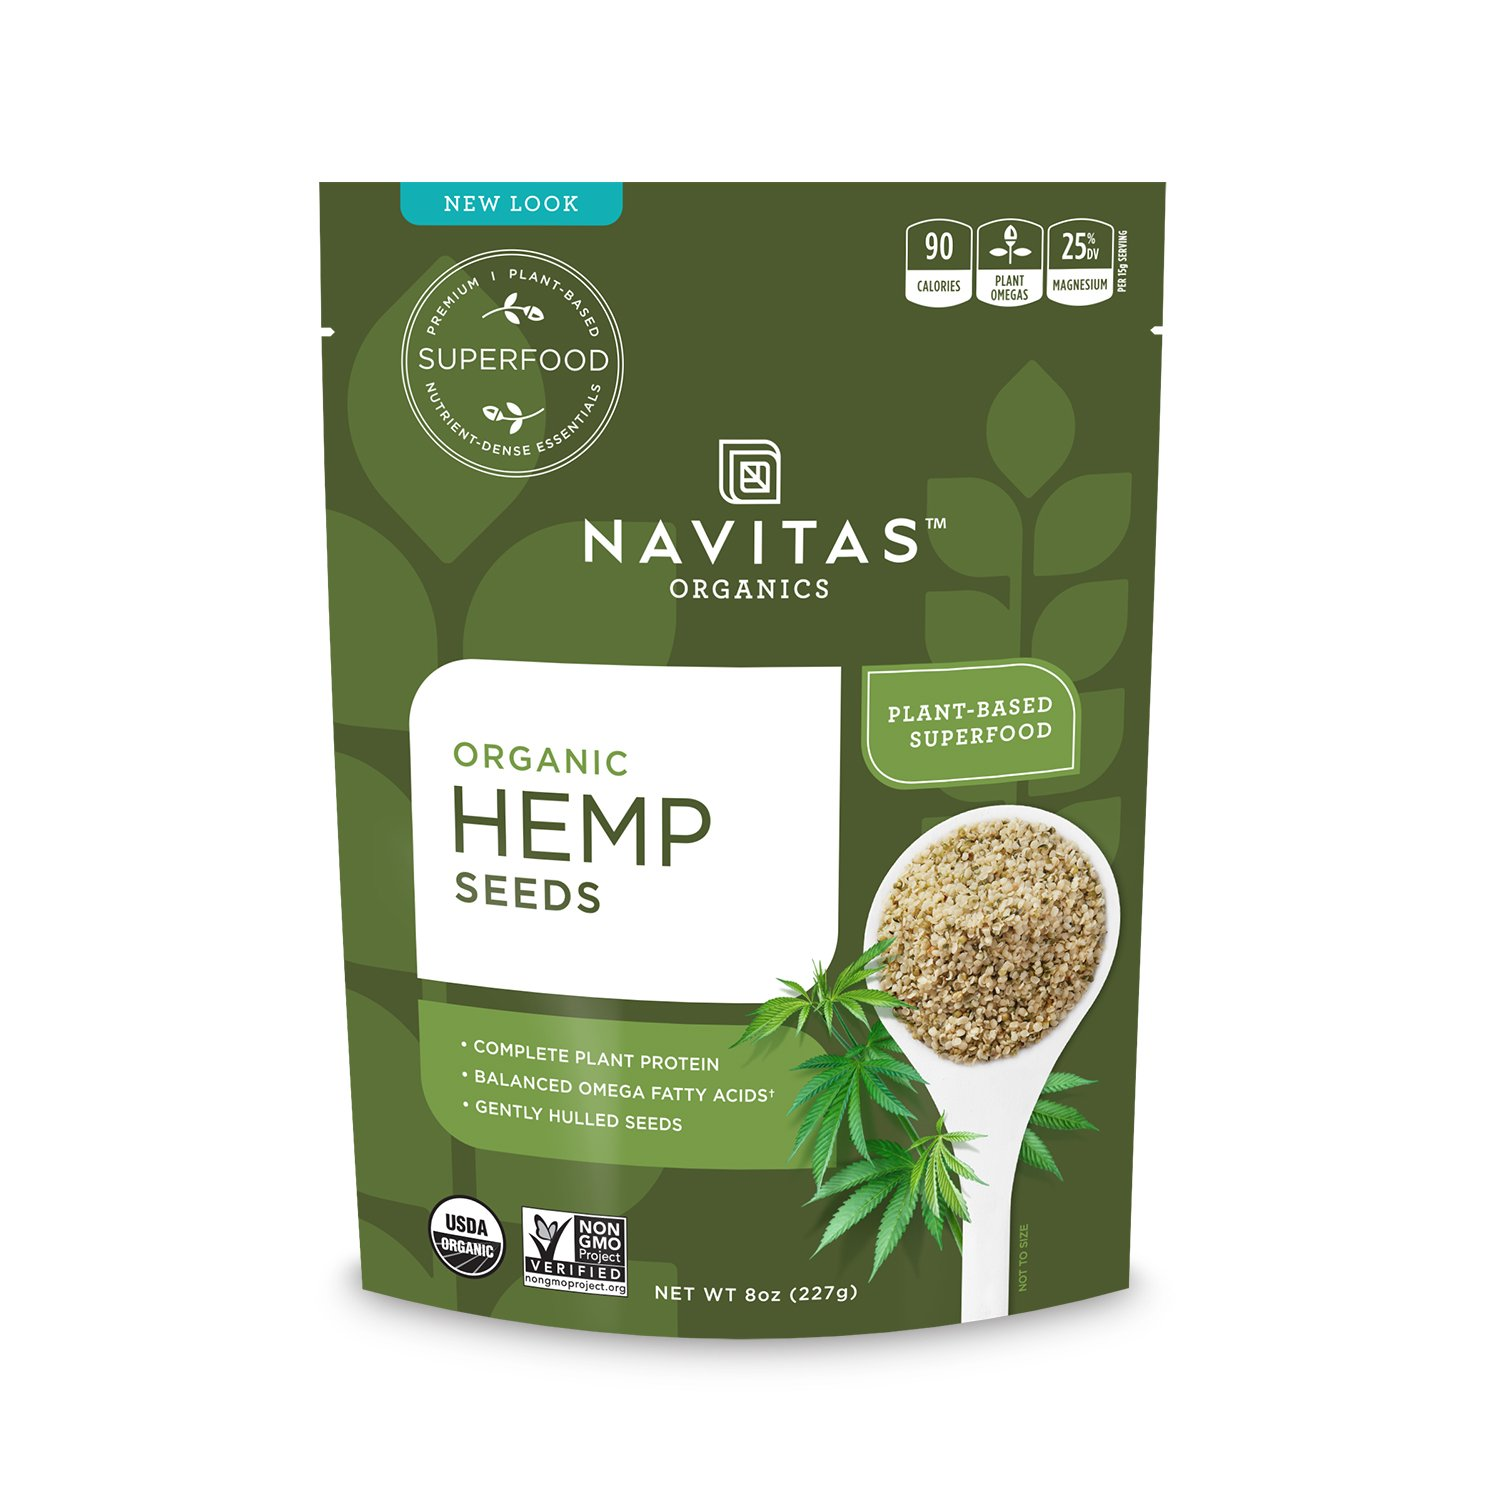 Navitas Organics Raw Hemp Seeds, 8oz. Pouch (Pack of 2)